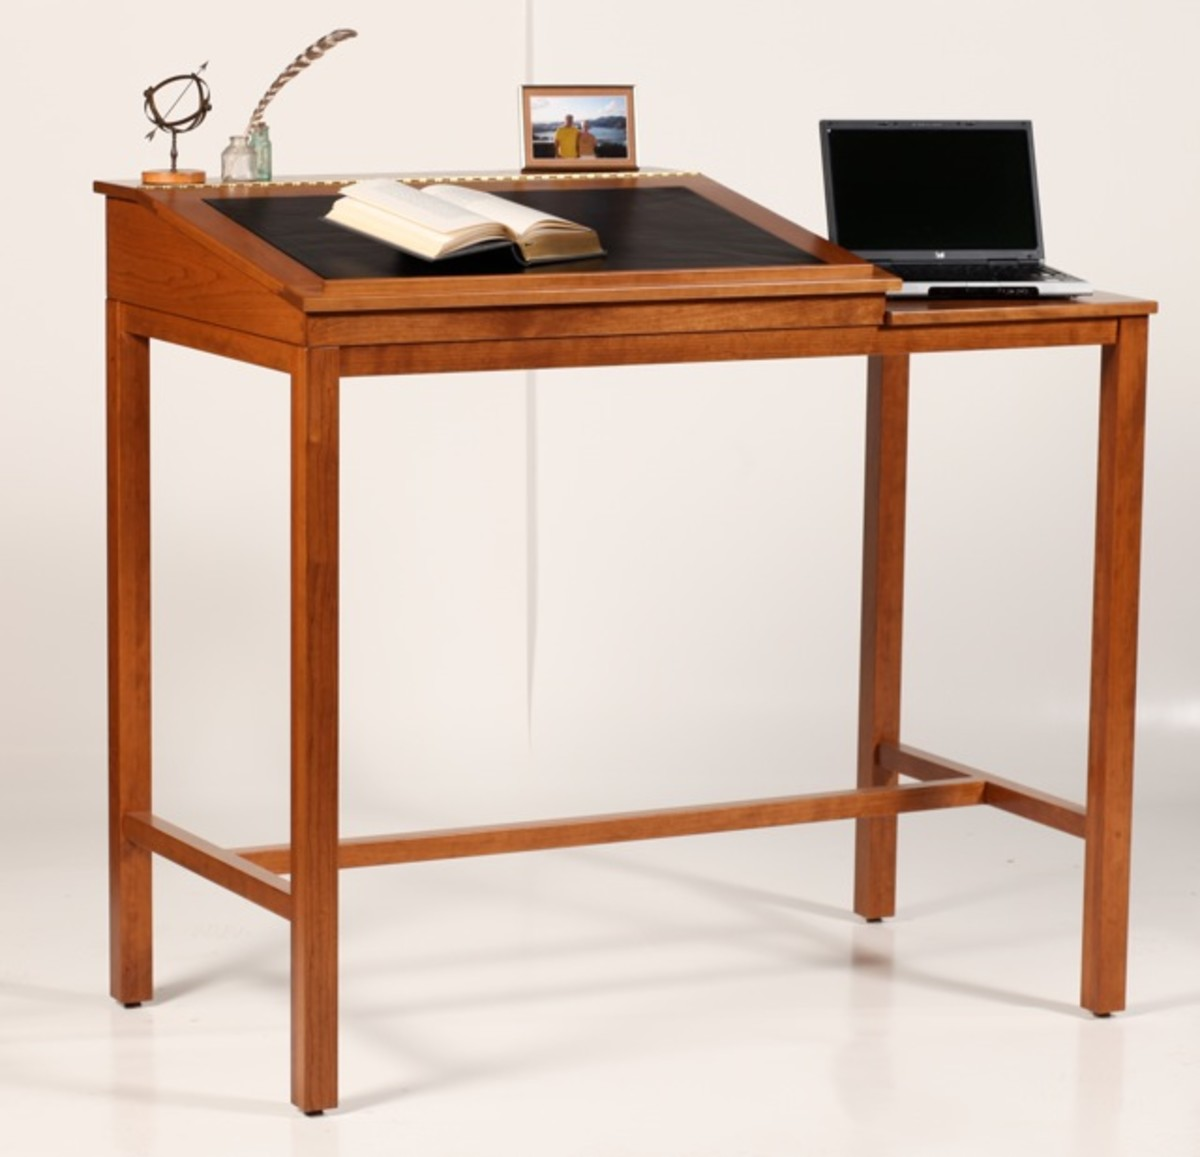 Standupdesks.com has some beautiful designs! This one is fashioned after the stand up desk Ernest Hemingway used. (http://www.standupdesks.com/hemingway.shtml)